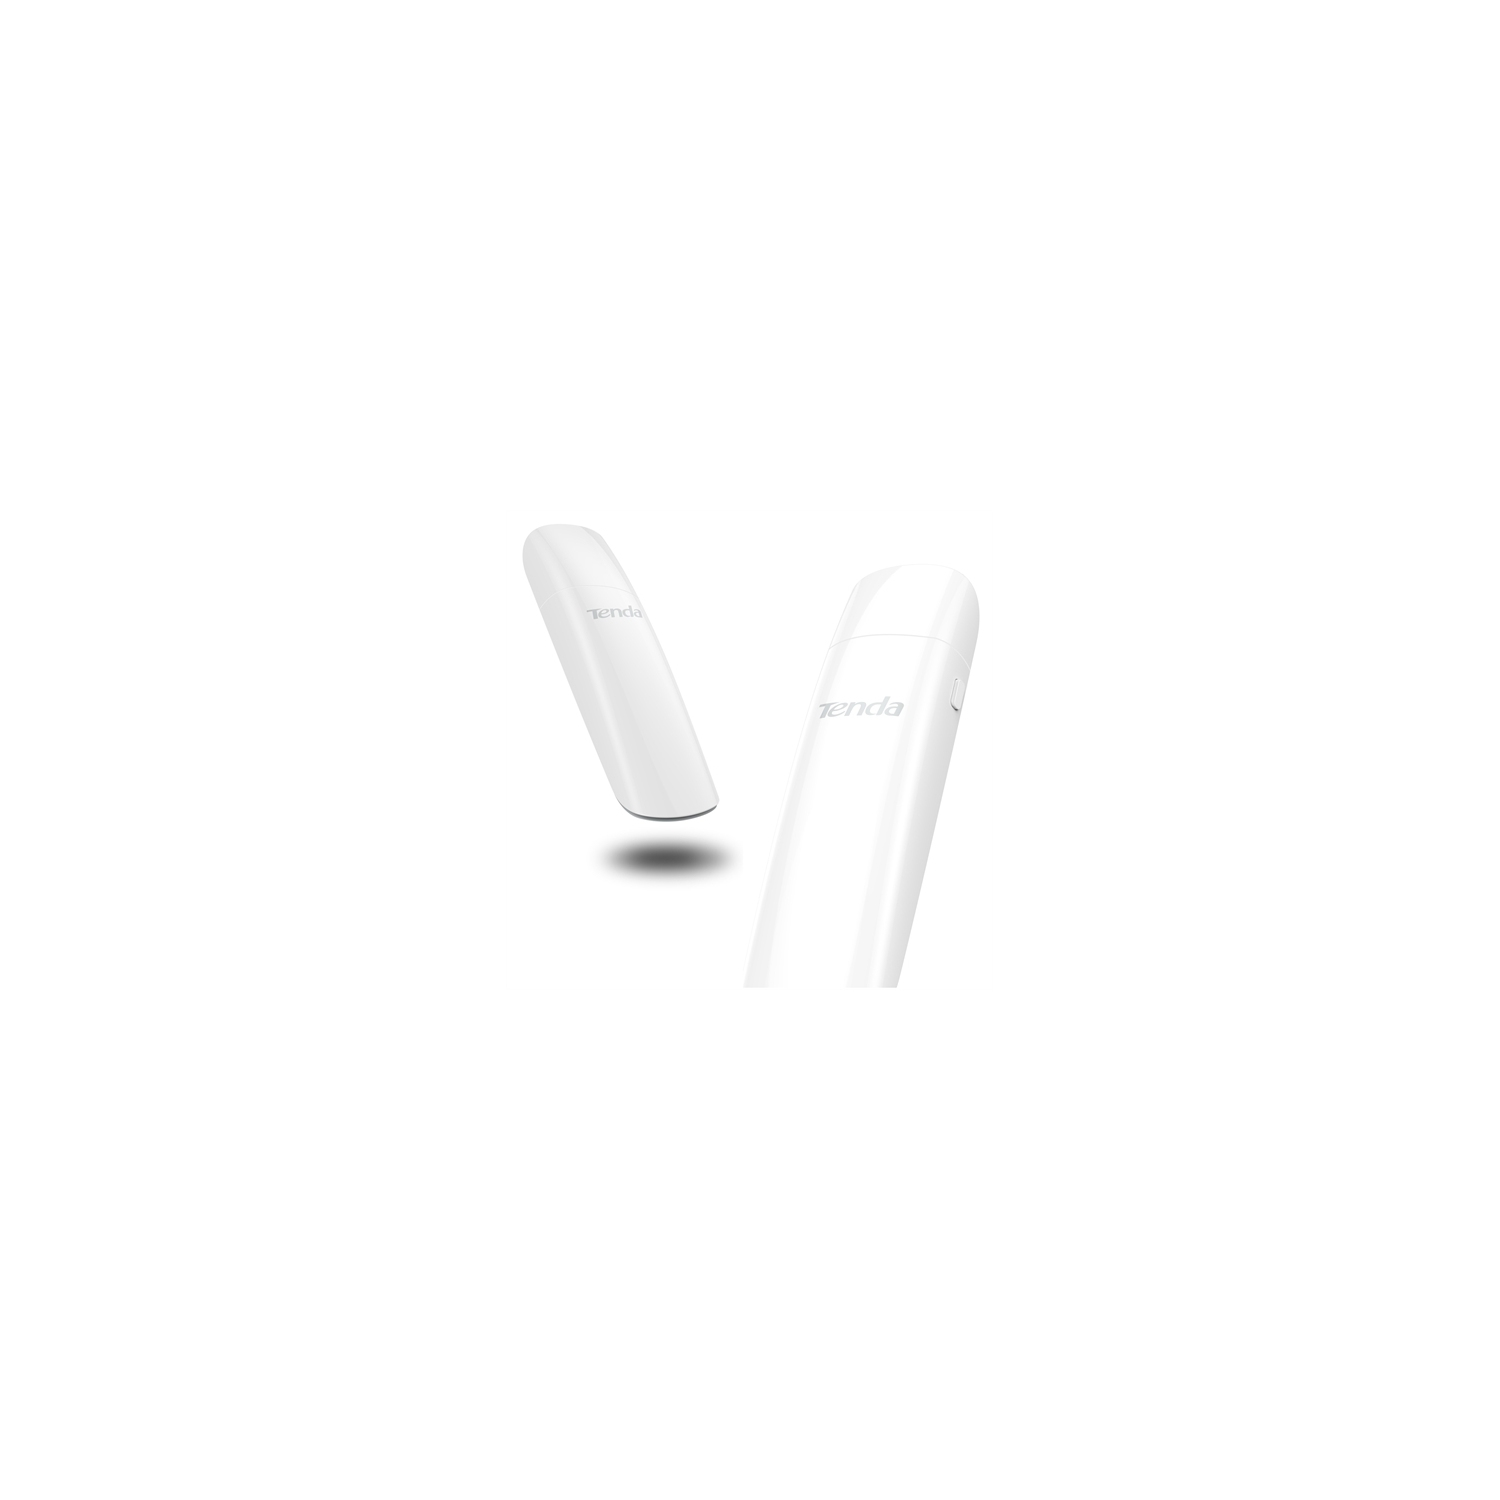 Tenda U12 Ac1300 Wireless Dual Band Usb Adapter For Extreme Multimedia Experience Up To 867 Mbps On 5ghz Network Adapters Best Buy Canada